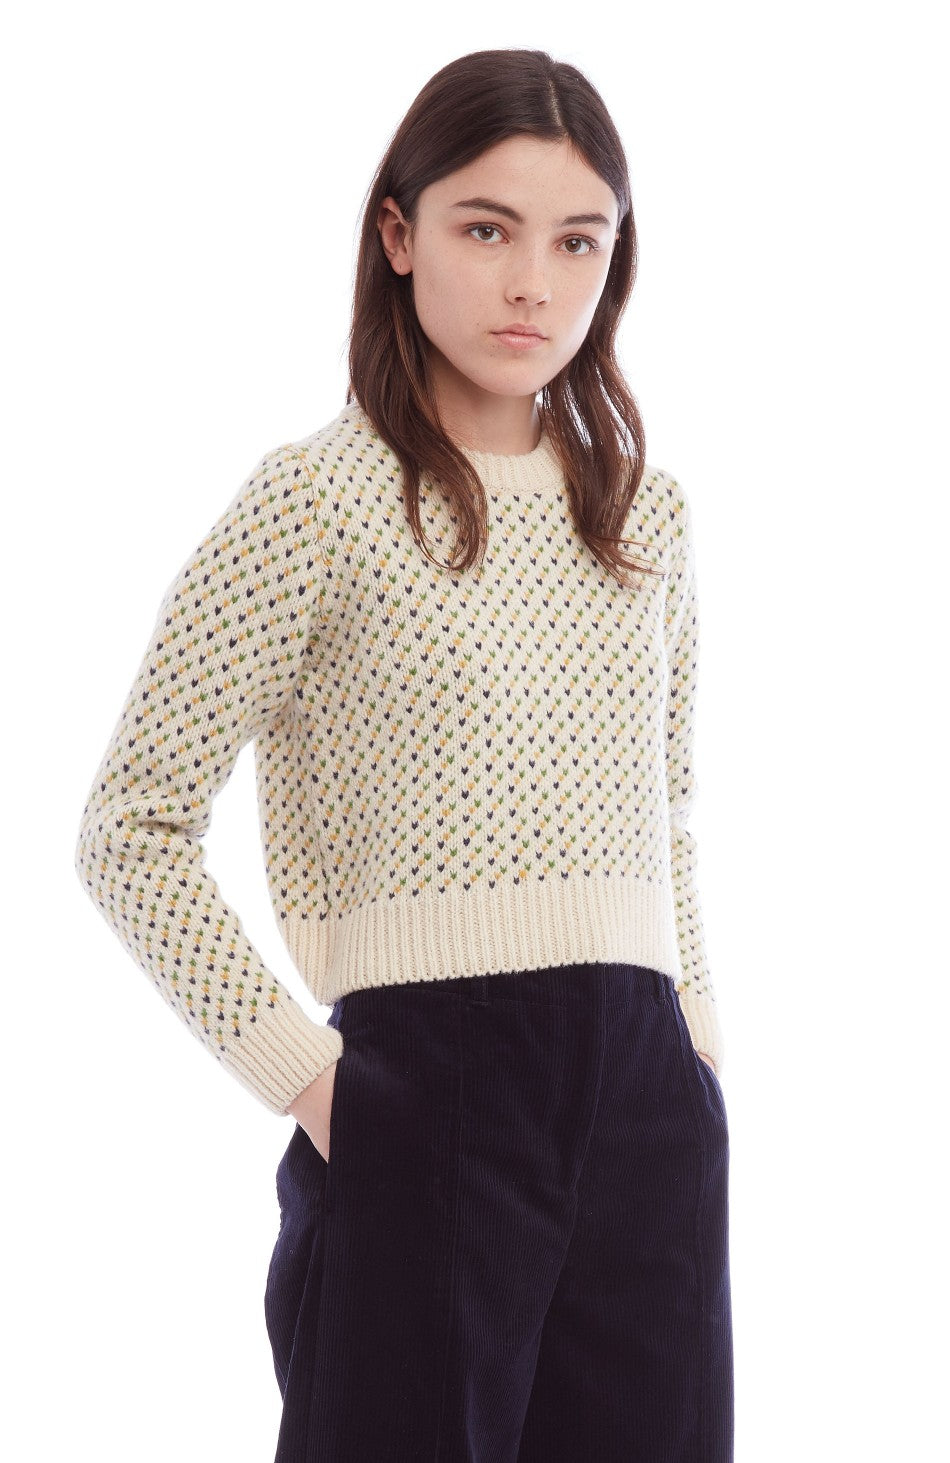 Birdseye Crew Sweater in Ecru